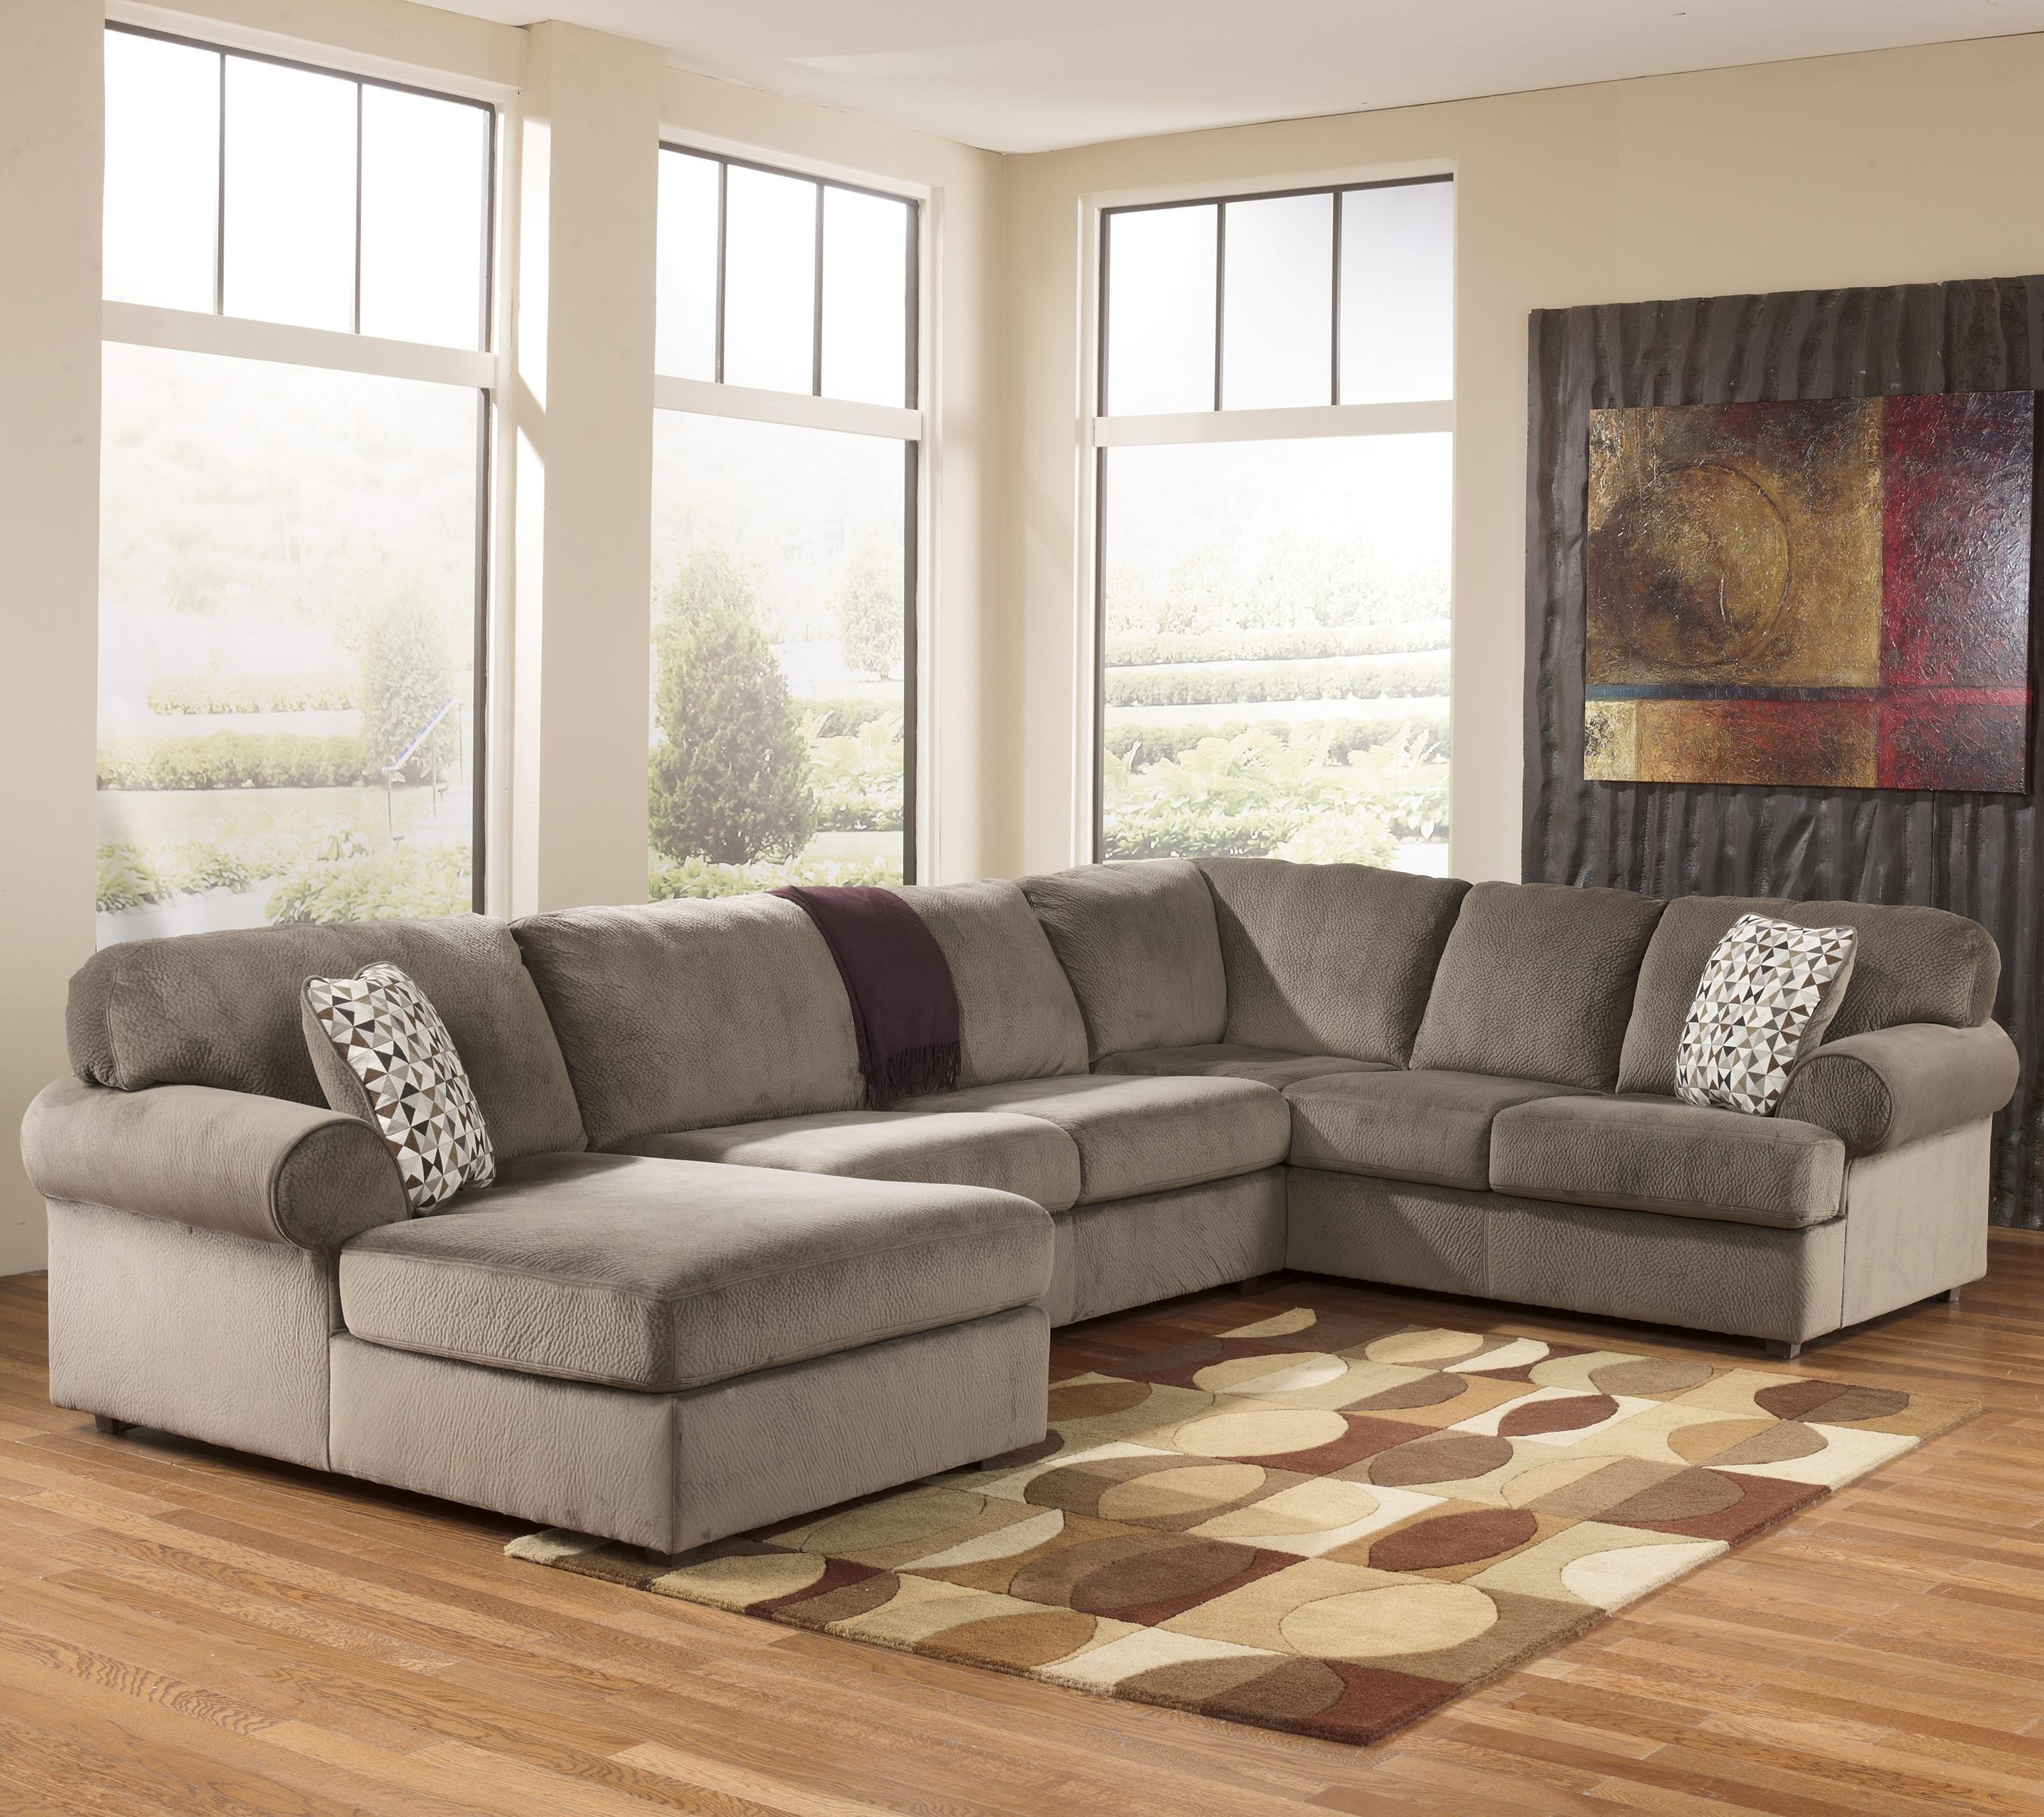 gray trim sectional ideas sofa and ashley nailhead images furniture fabric fascinating with new also fabulous